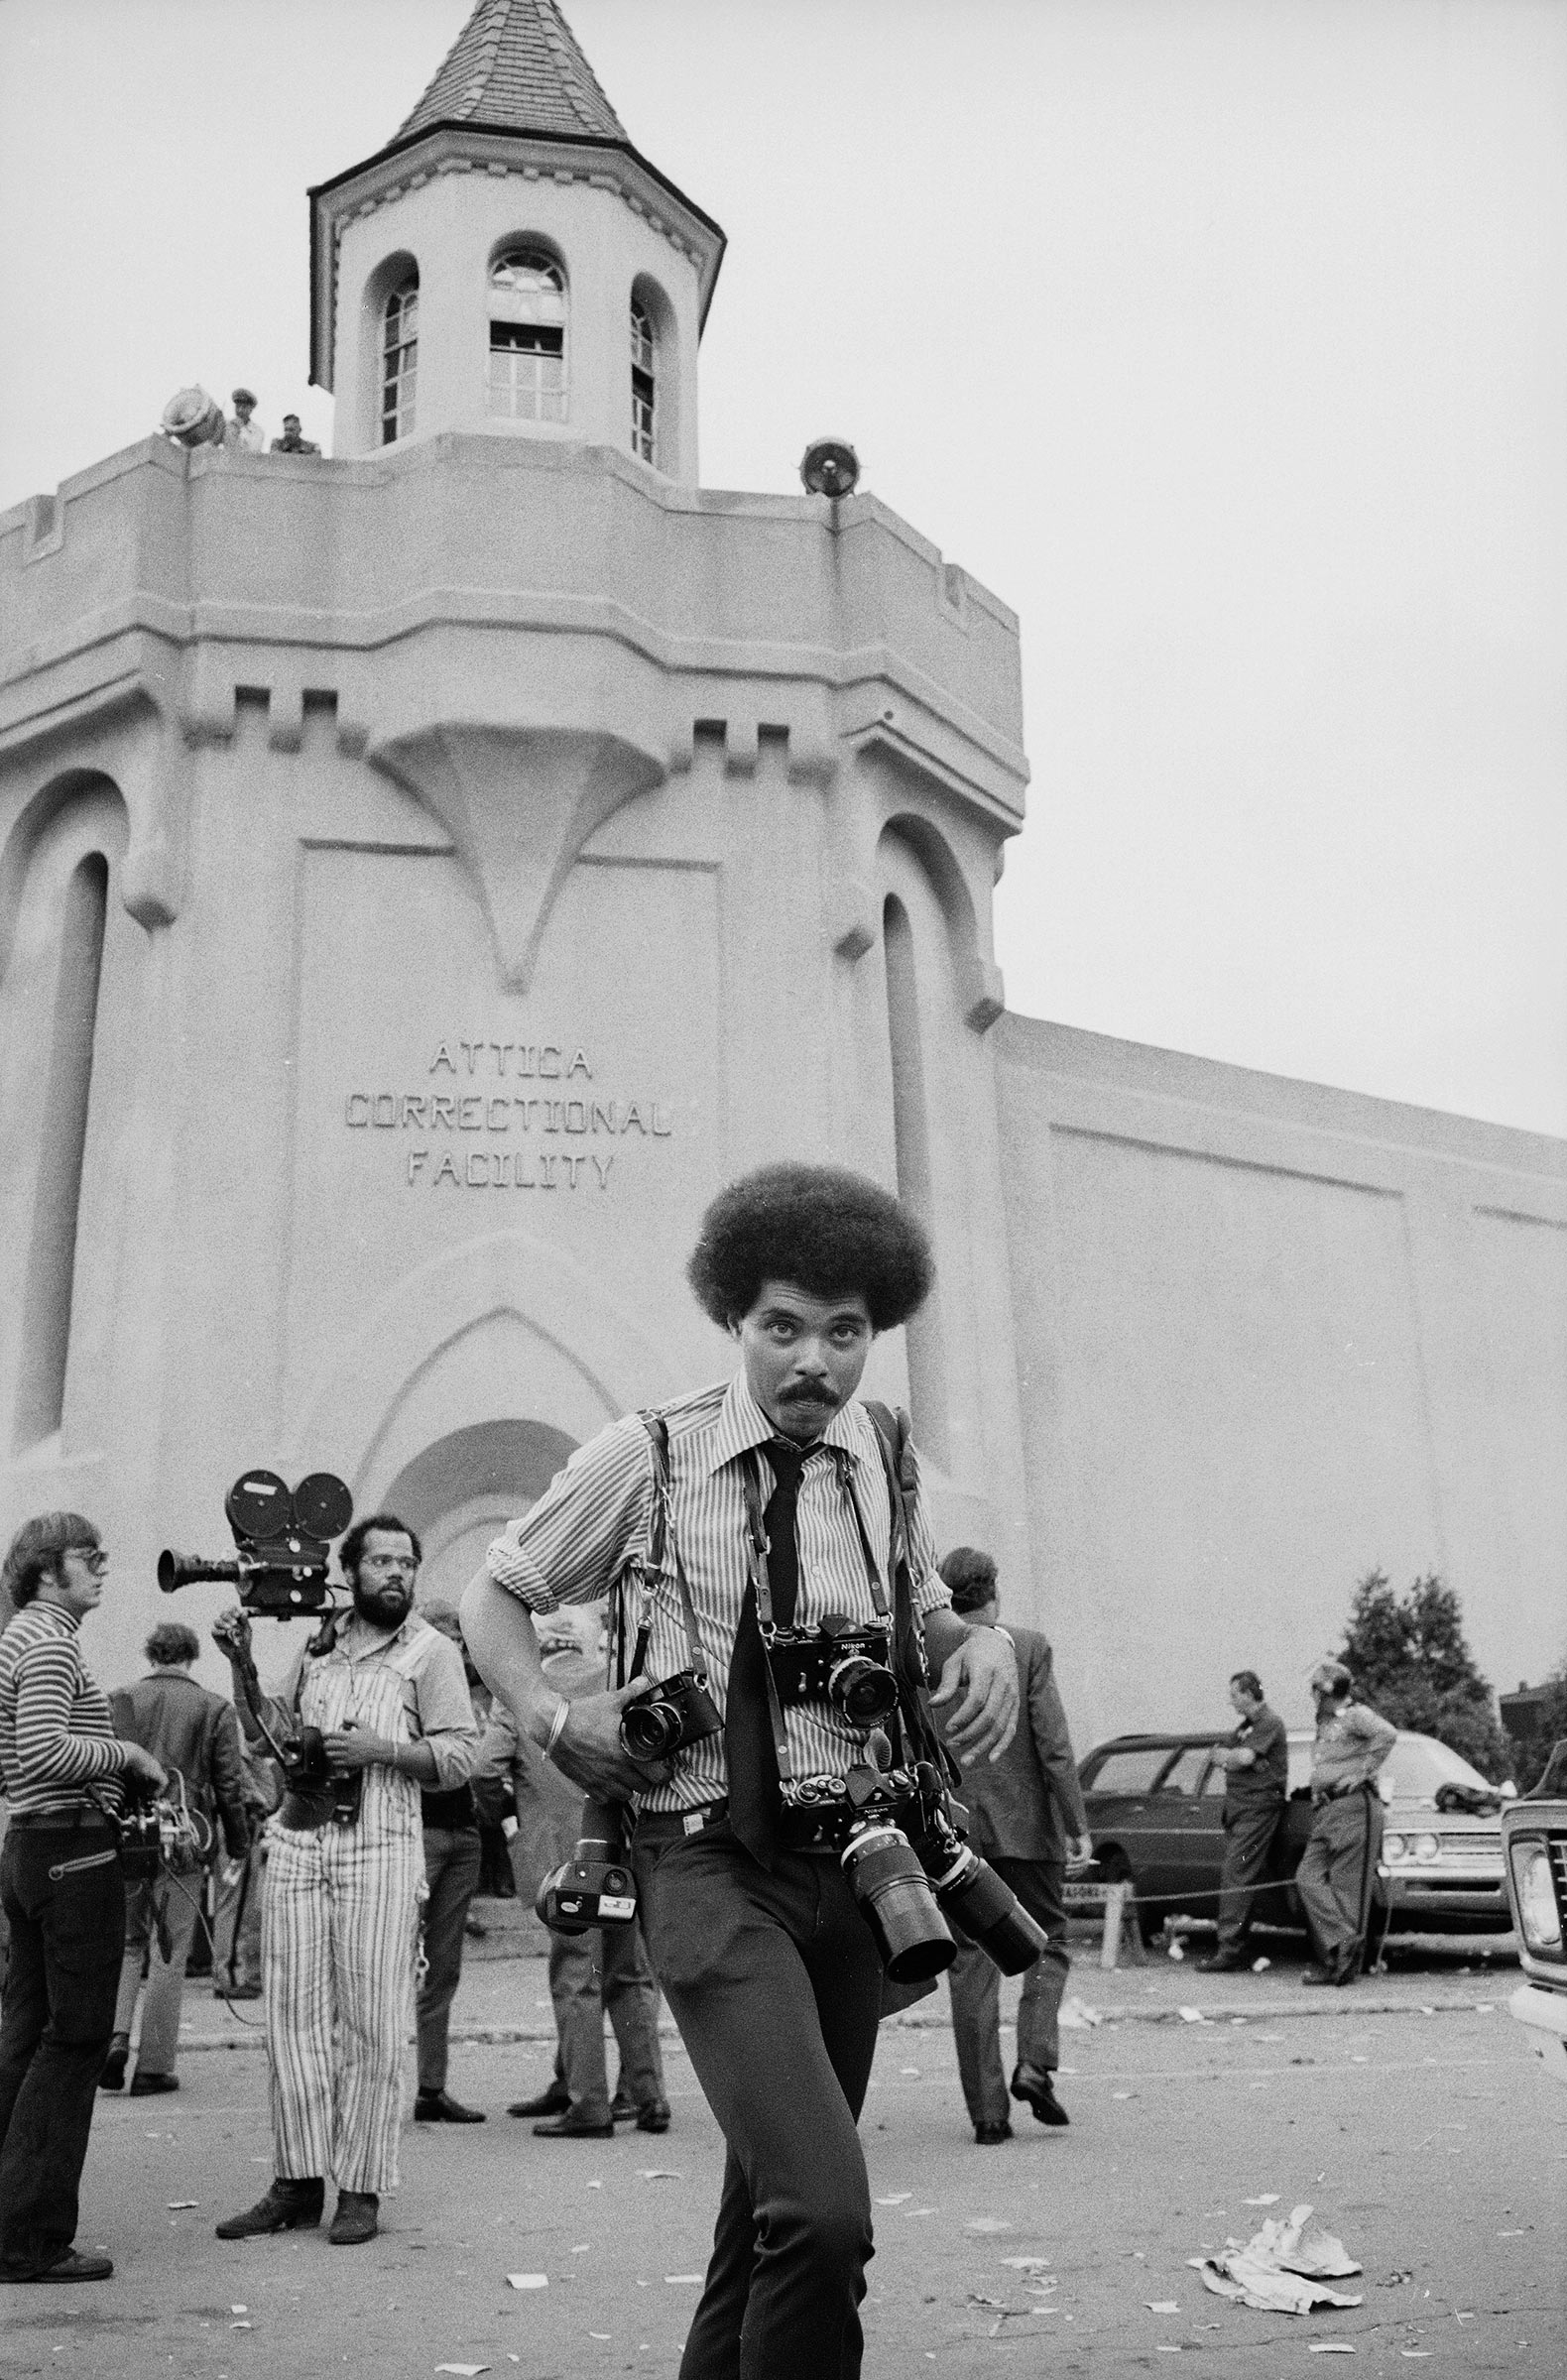 John Shearer on assignment during a prisoner riot and uprising at Attica prison in 1971.